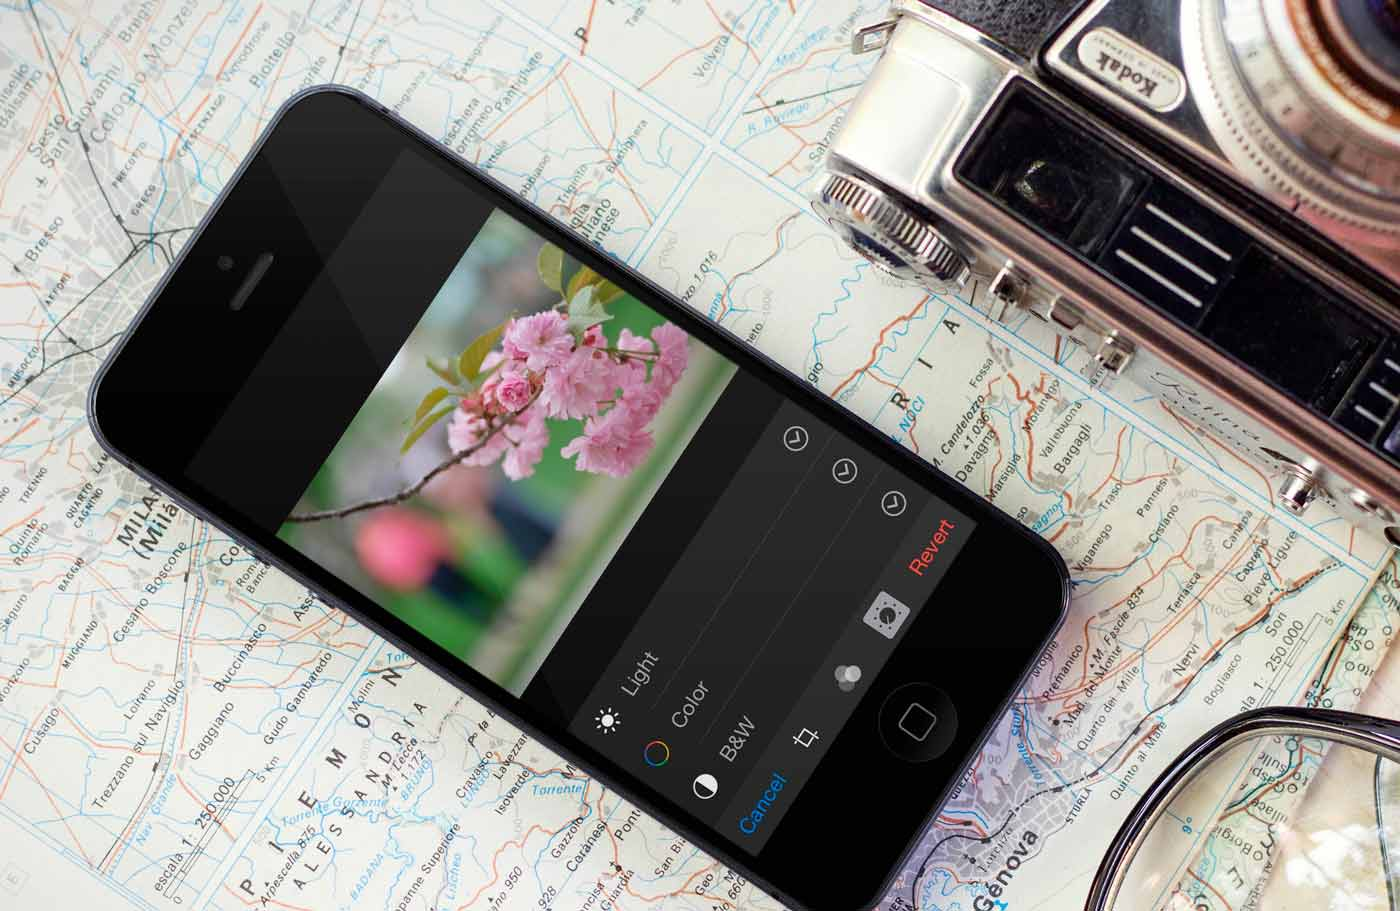 Tutor for Photos for the iPhone